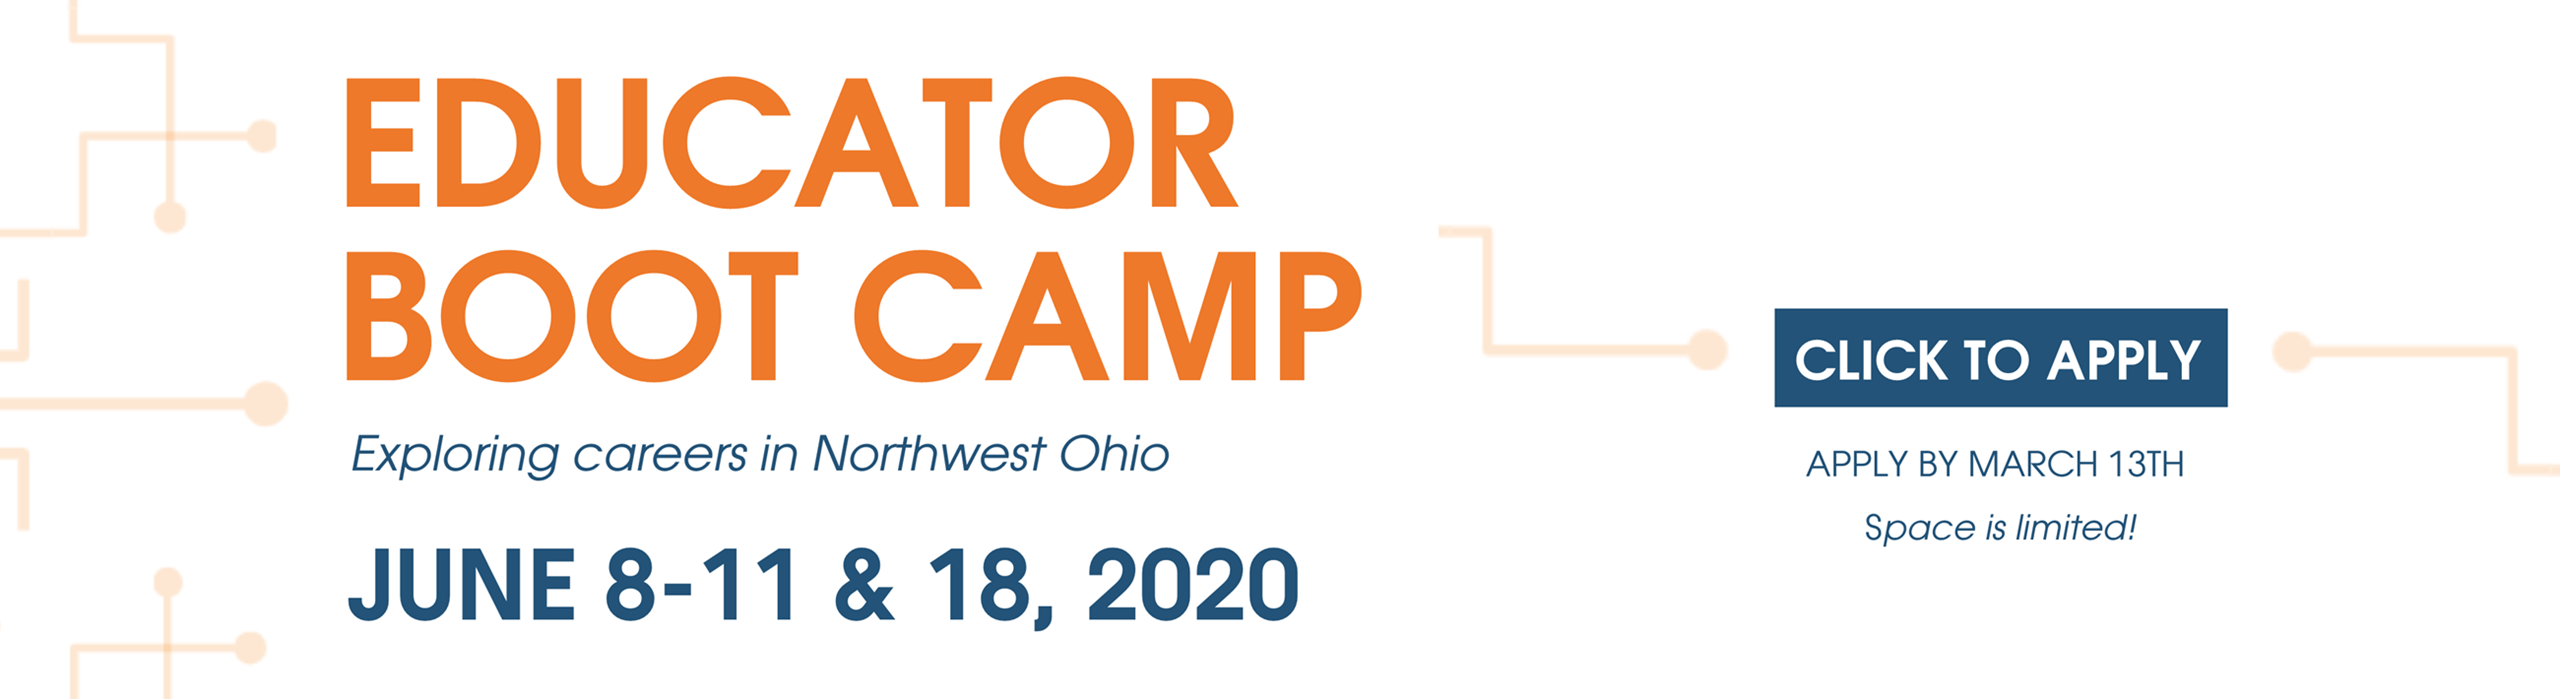 Educator Boot Camp for Northwest Ohio application available